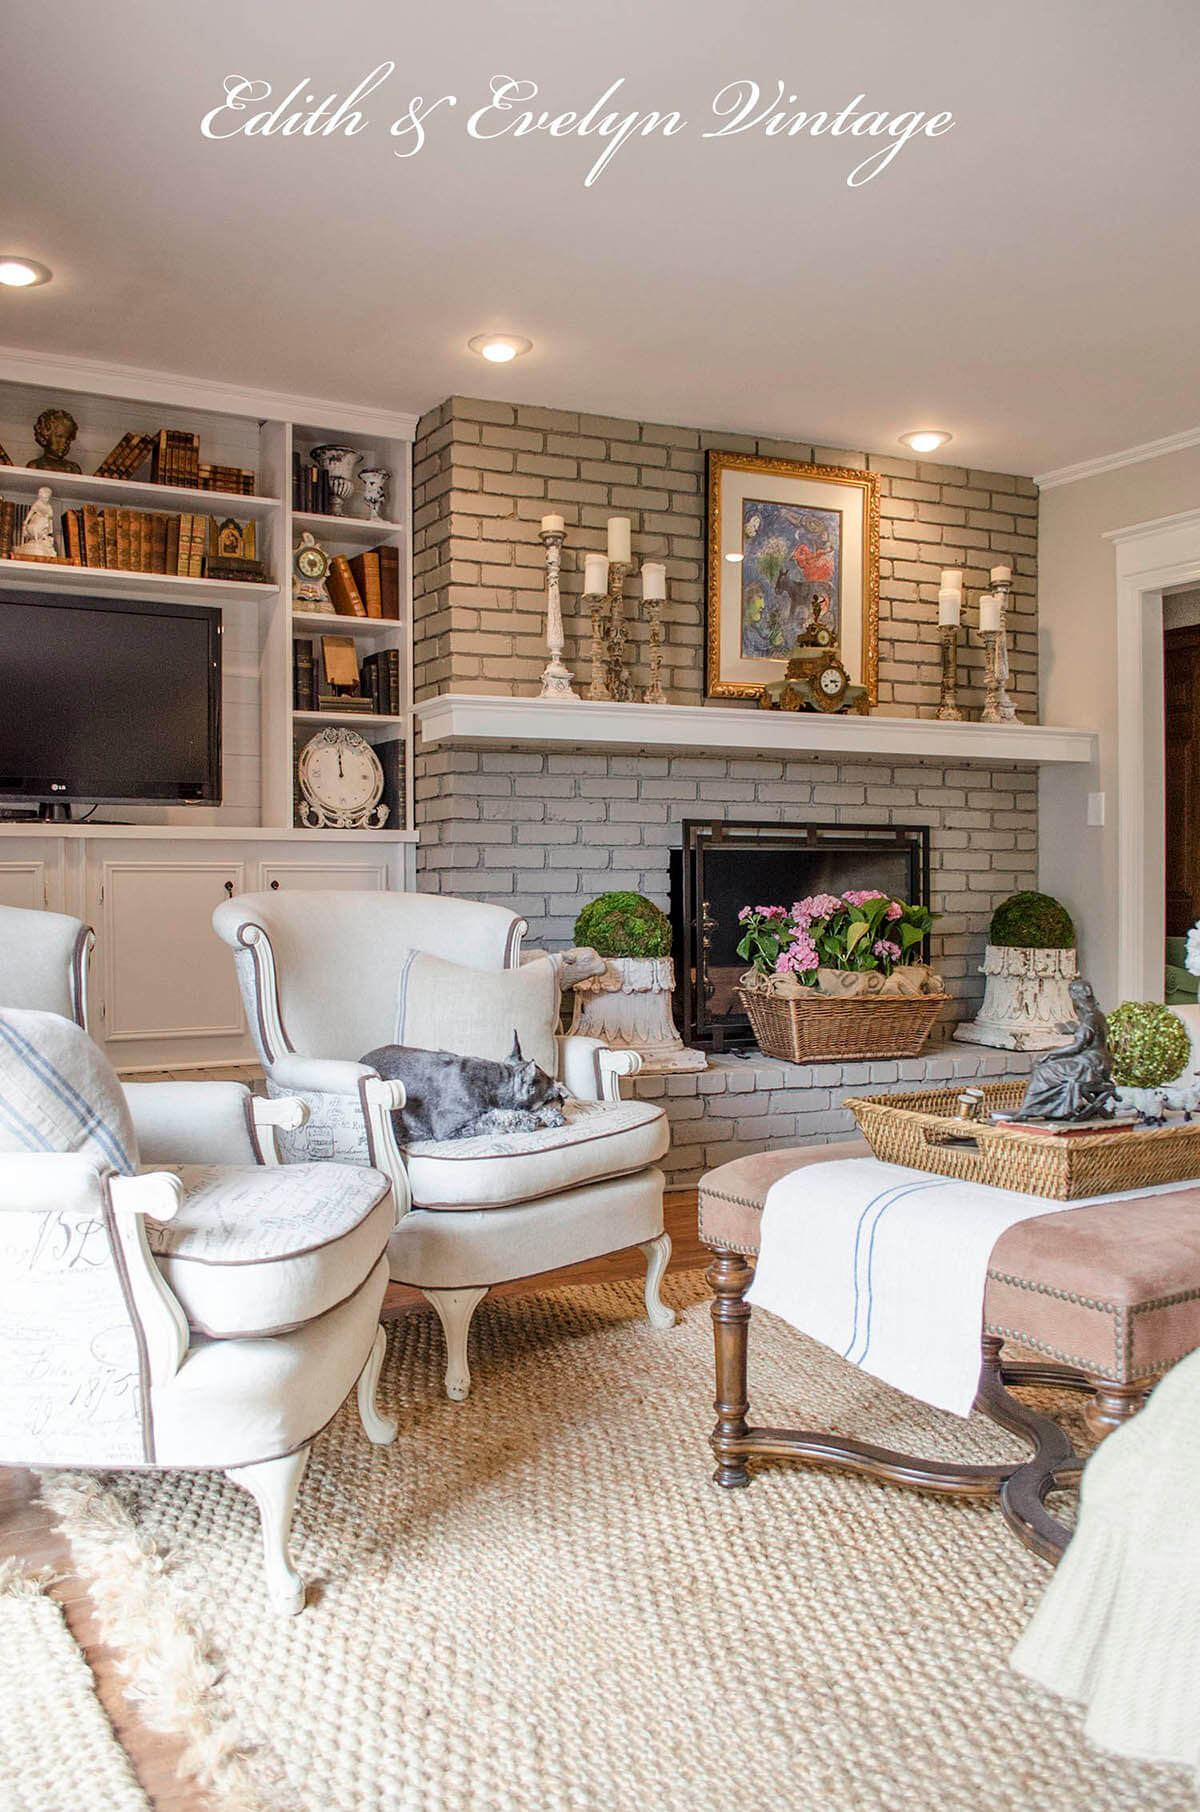 23 Best Brick Fireplace Ideas To Make Your Living Room Inviting In 2021